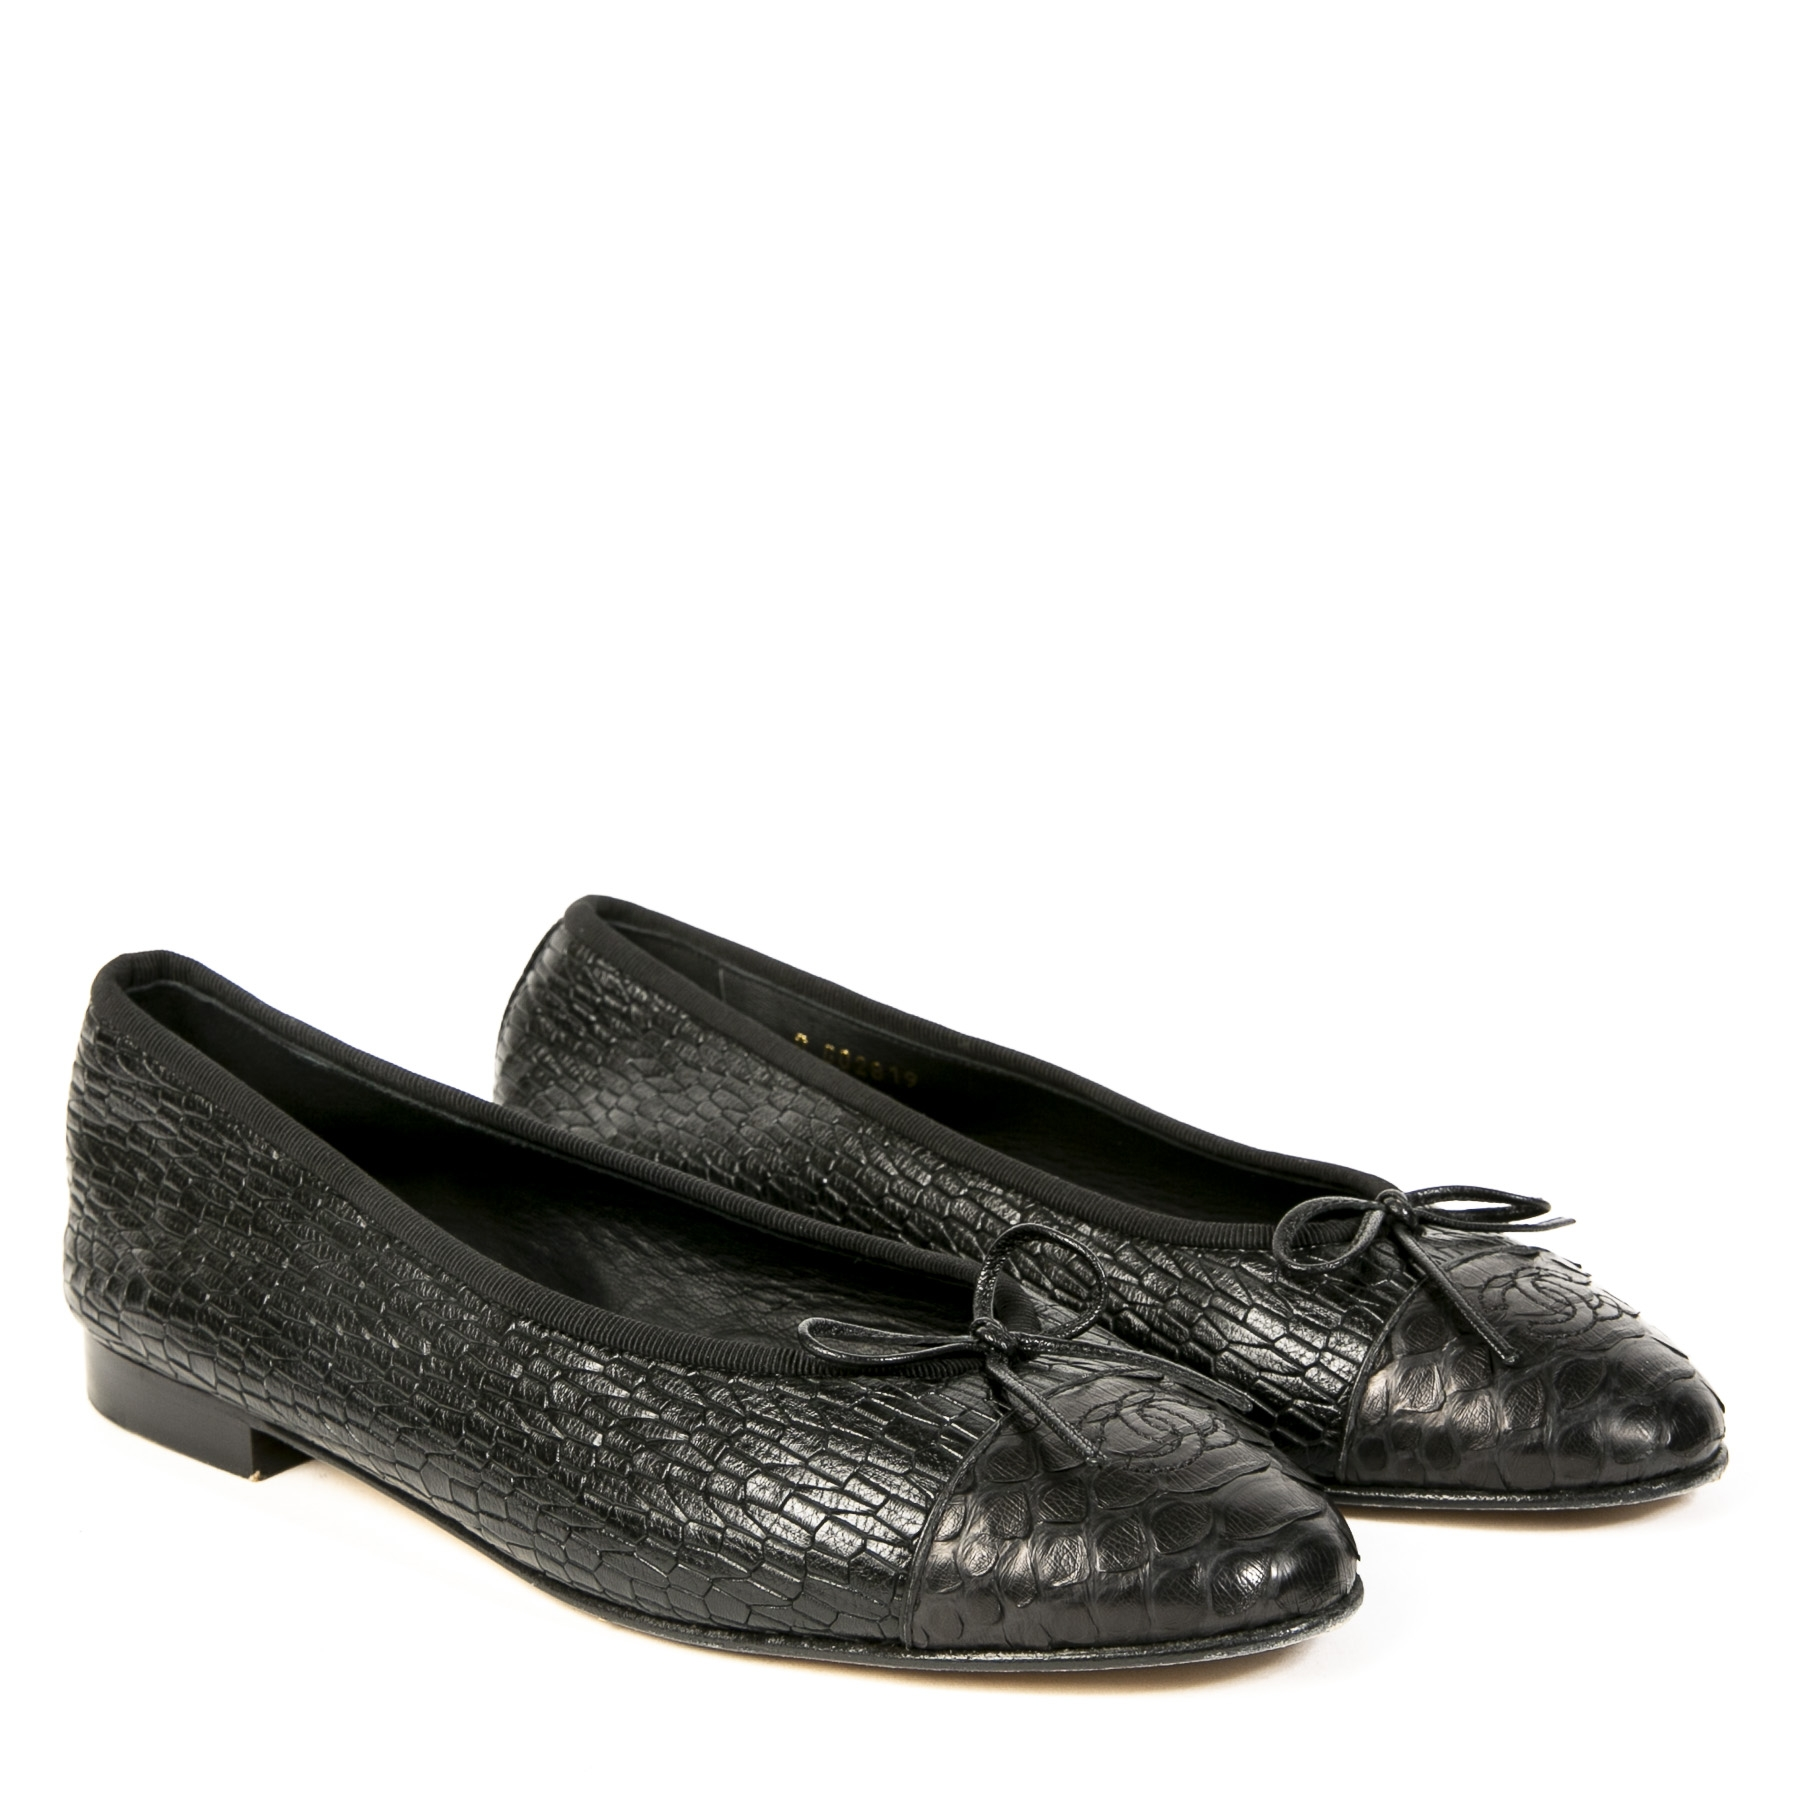 We buy and sell your authentic Chanel Black Python Ballerina Flats - size 40.5